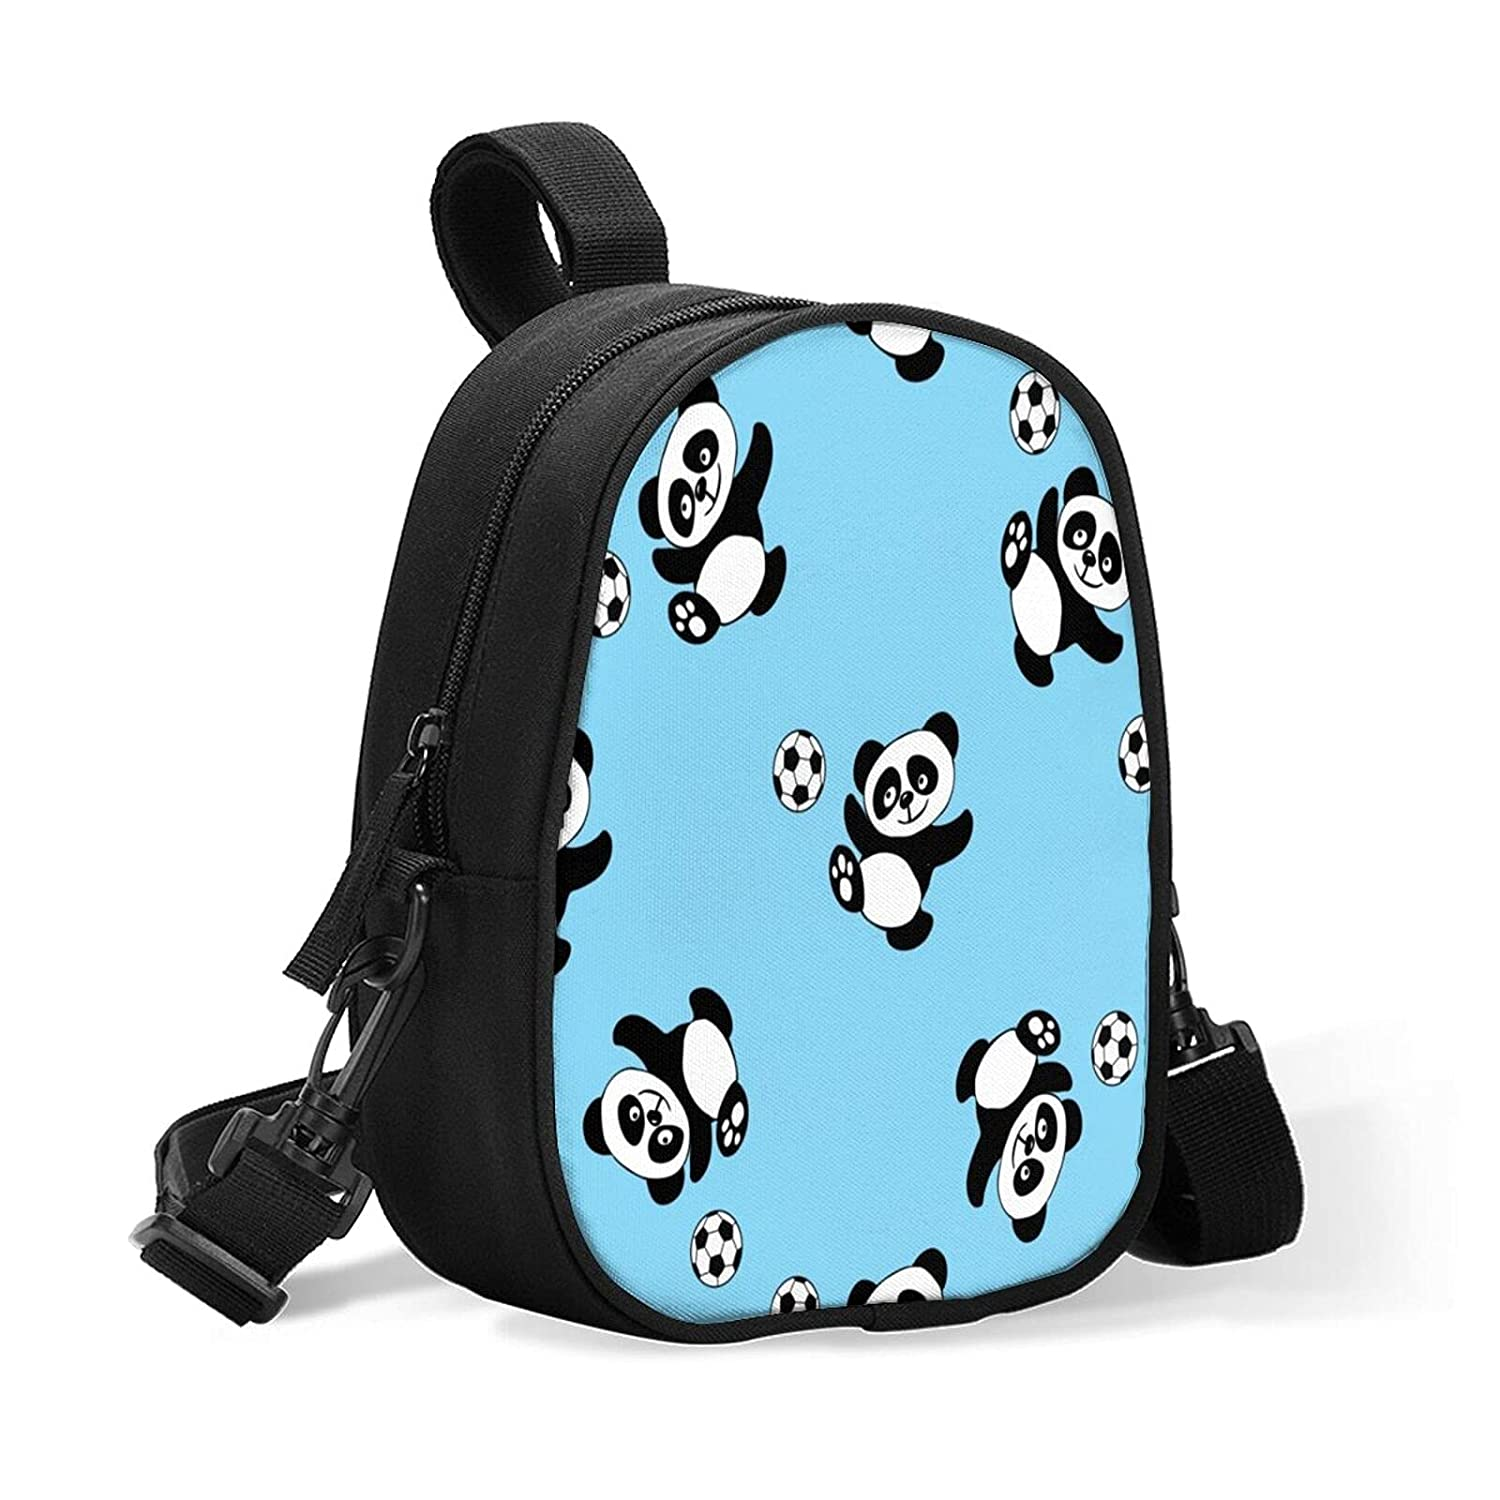 Panda Play Soccer Insulated Sale price Baby Bottle for Bag Size NEW before selling Upg Daycare